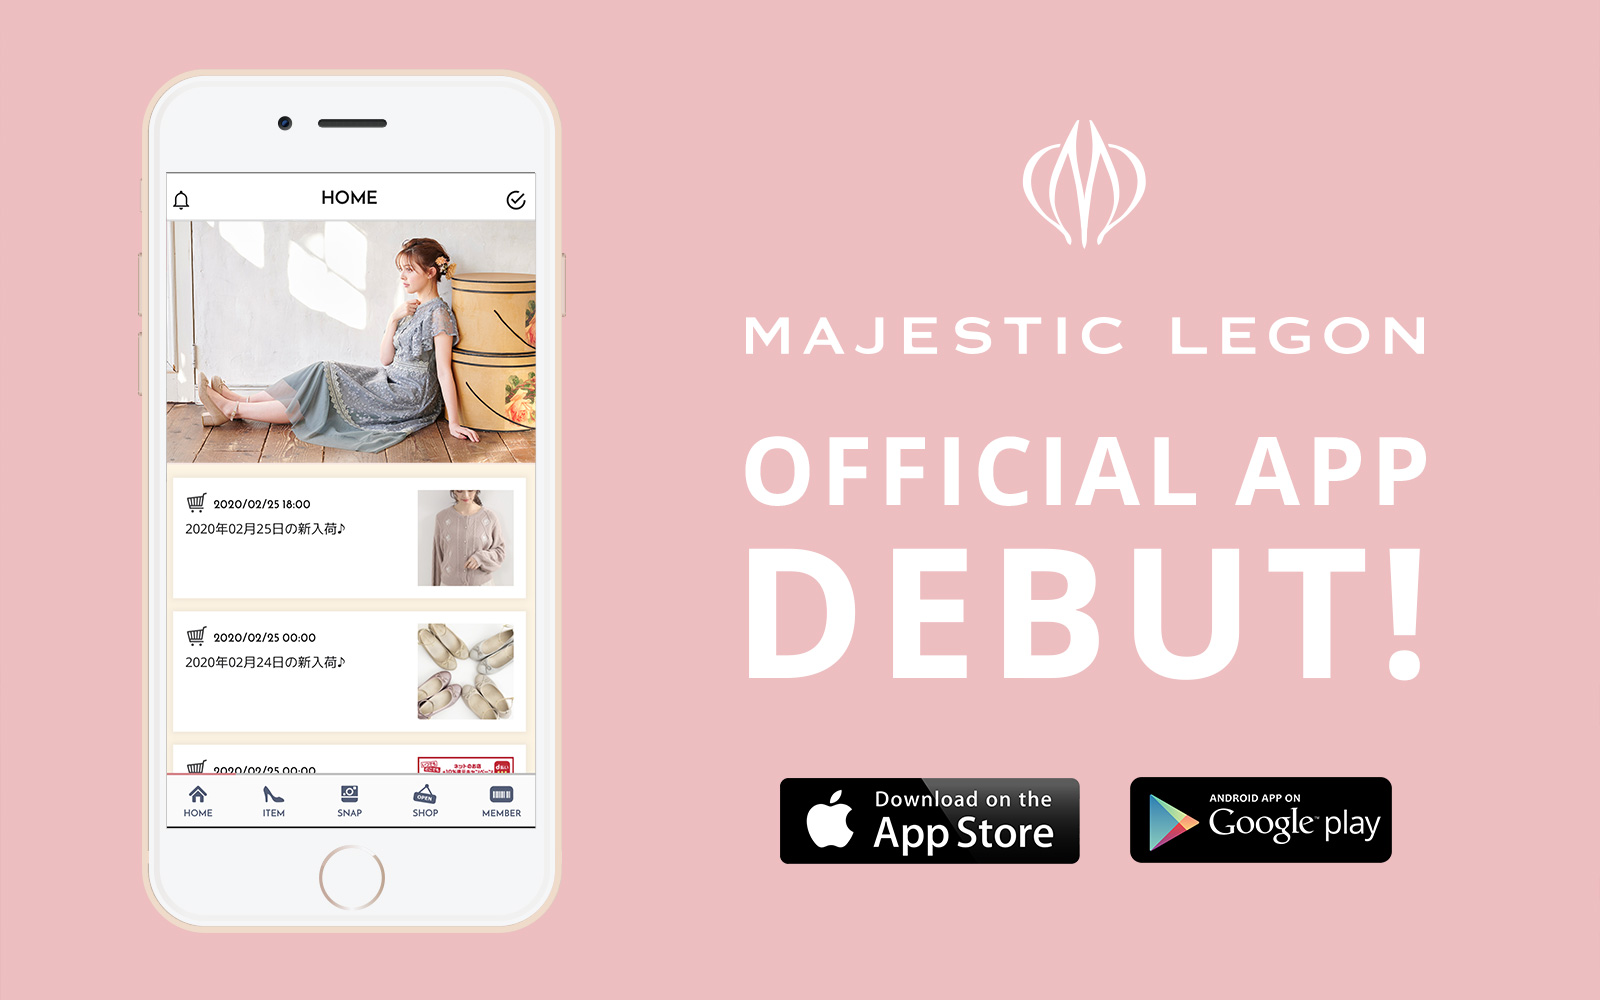 MAJESTIC LEGON APP DEBUT !!